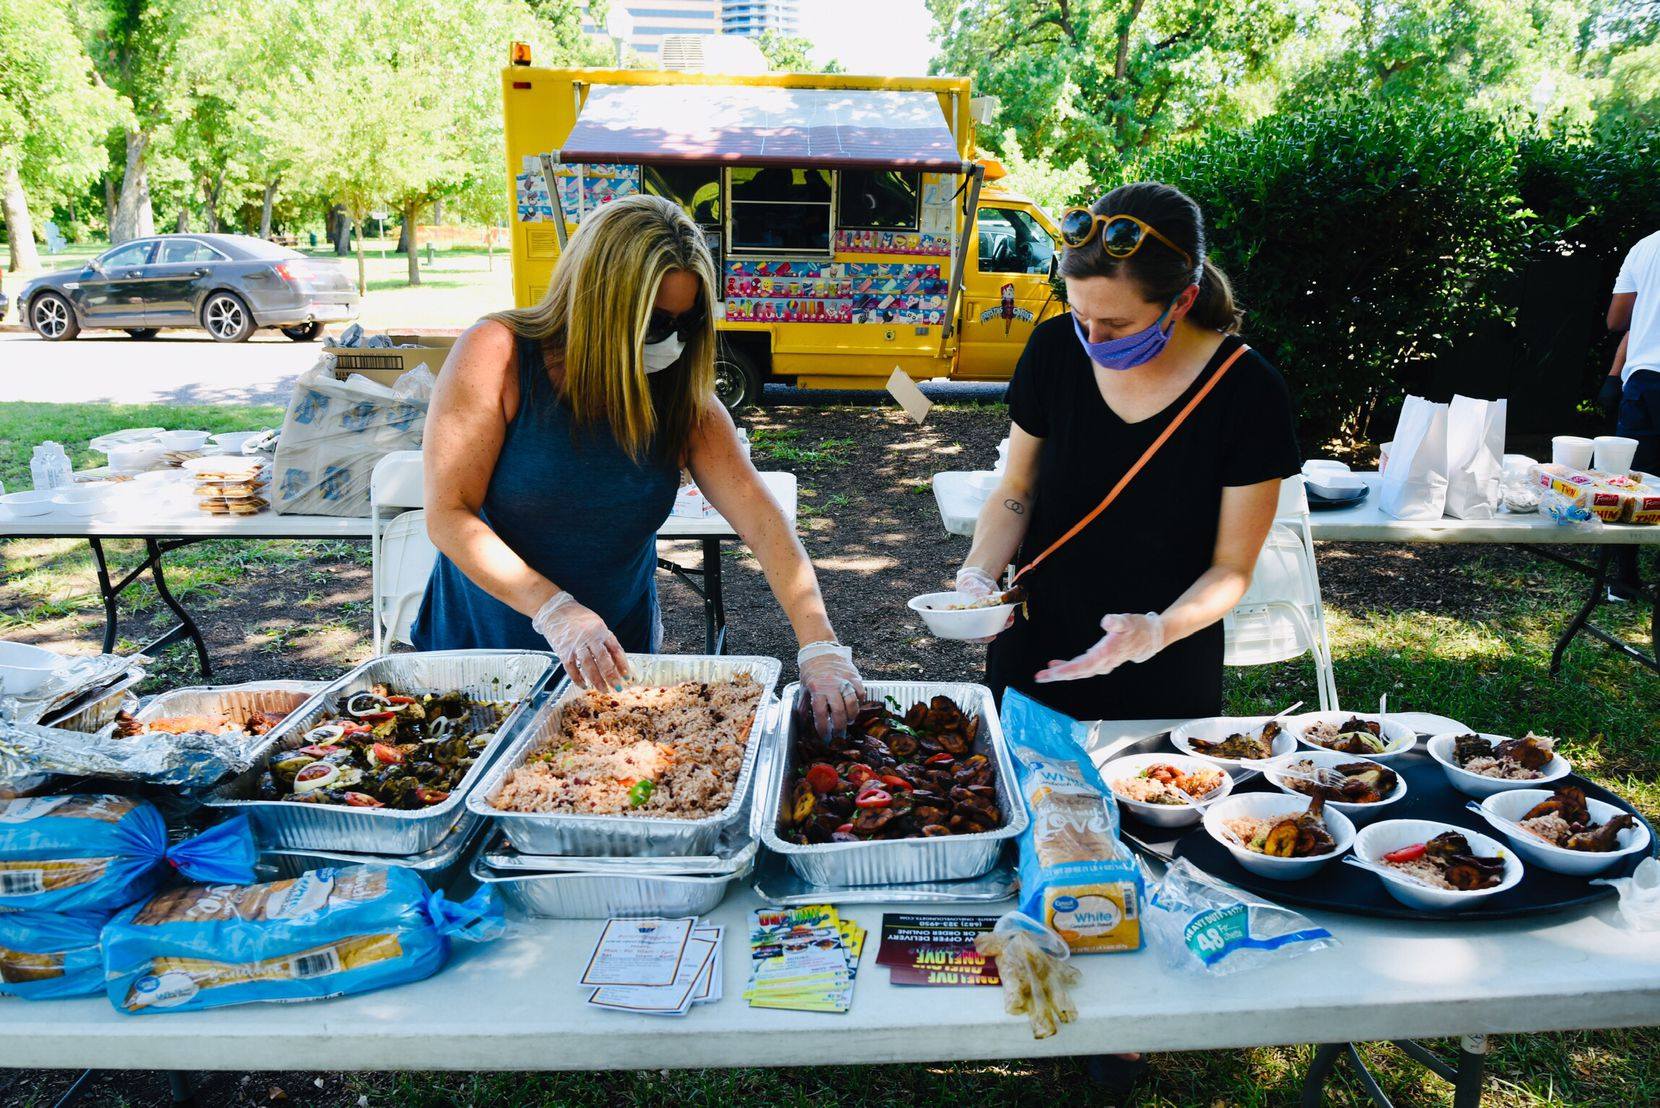 Volunteers Denise Jones (left) and Shoshana McIntosh plate food from One Love Caribbean restaurant during the Potluck Protest to support black-owned restaurants on June 13, 2020 at Reverchon Park in Dallas.